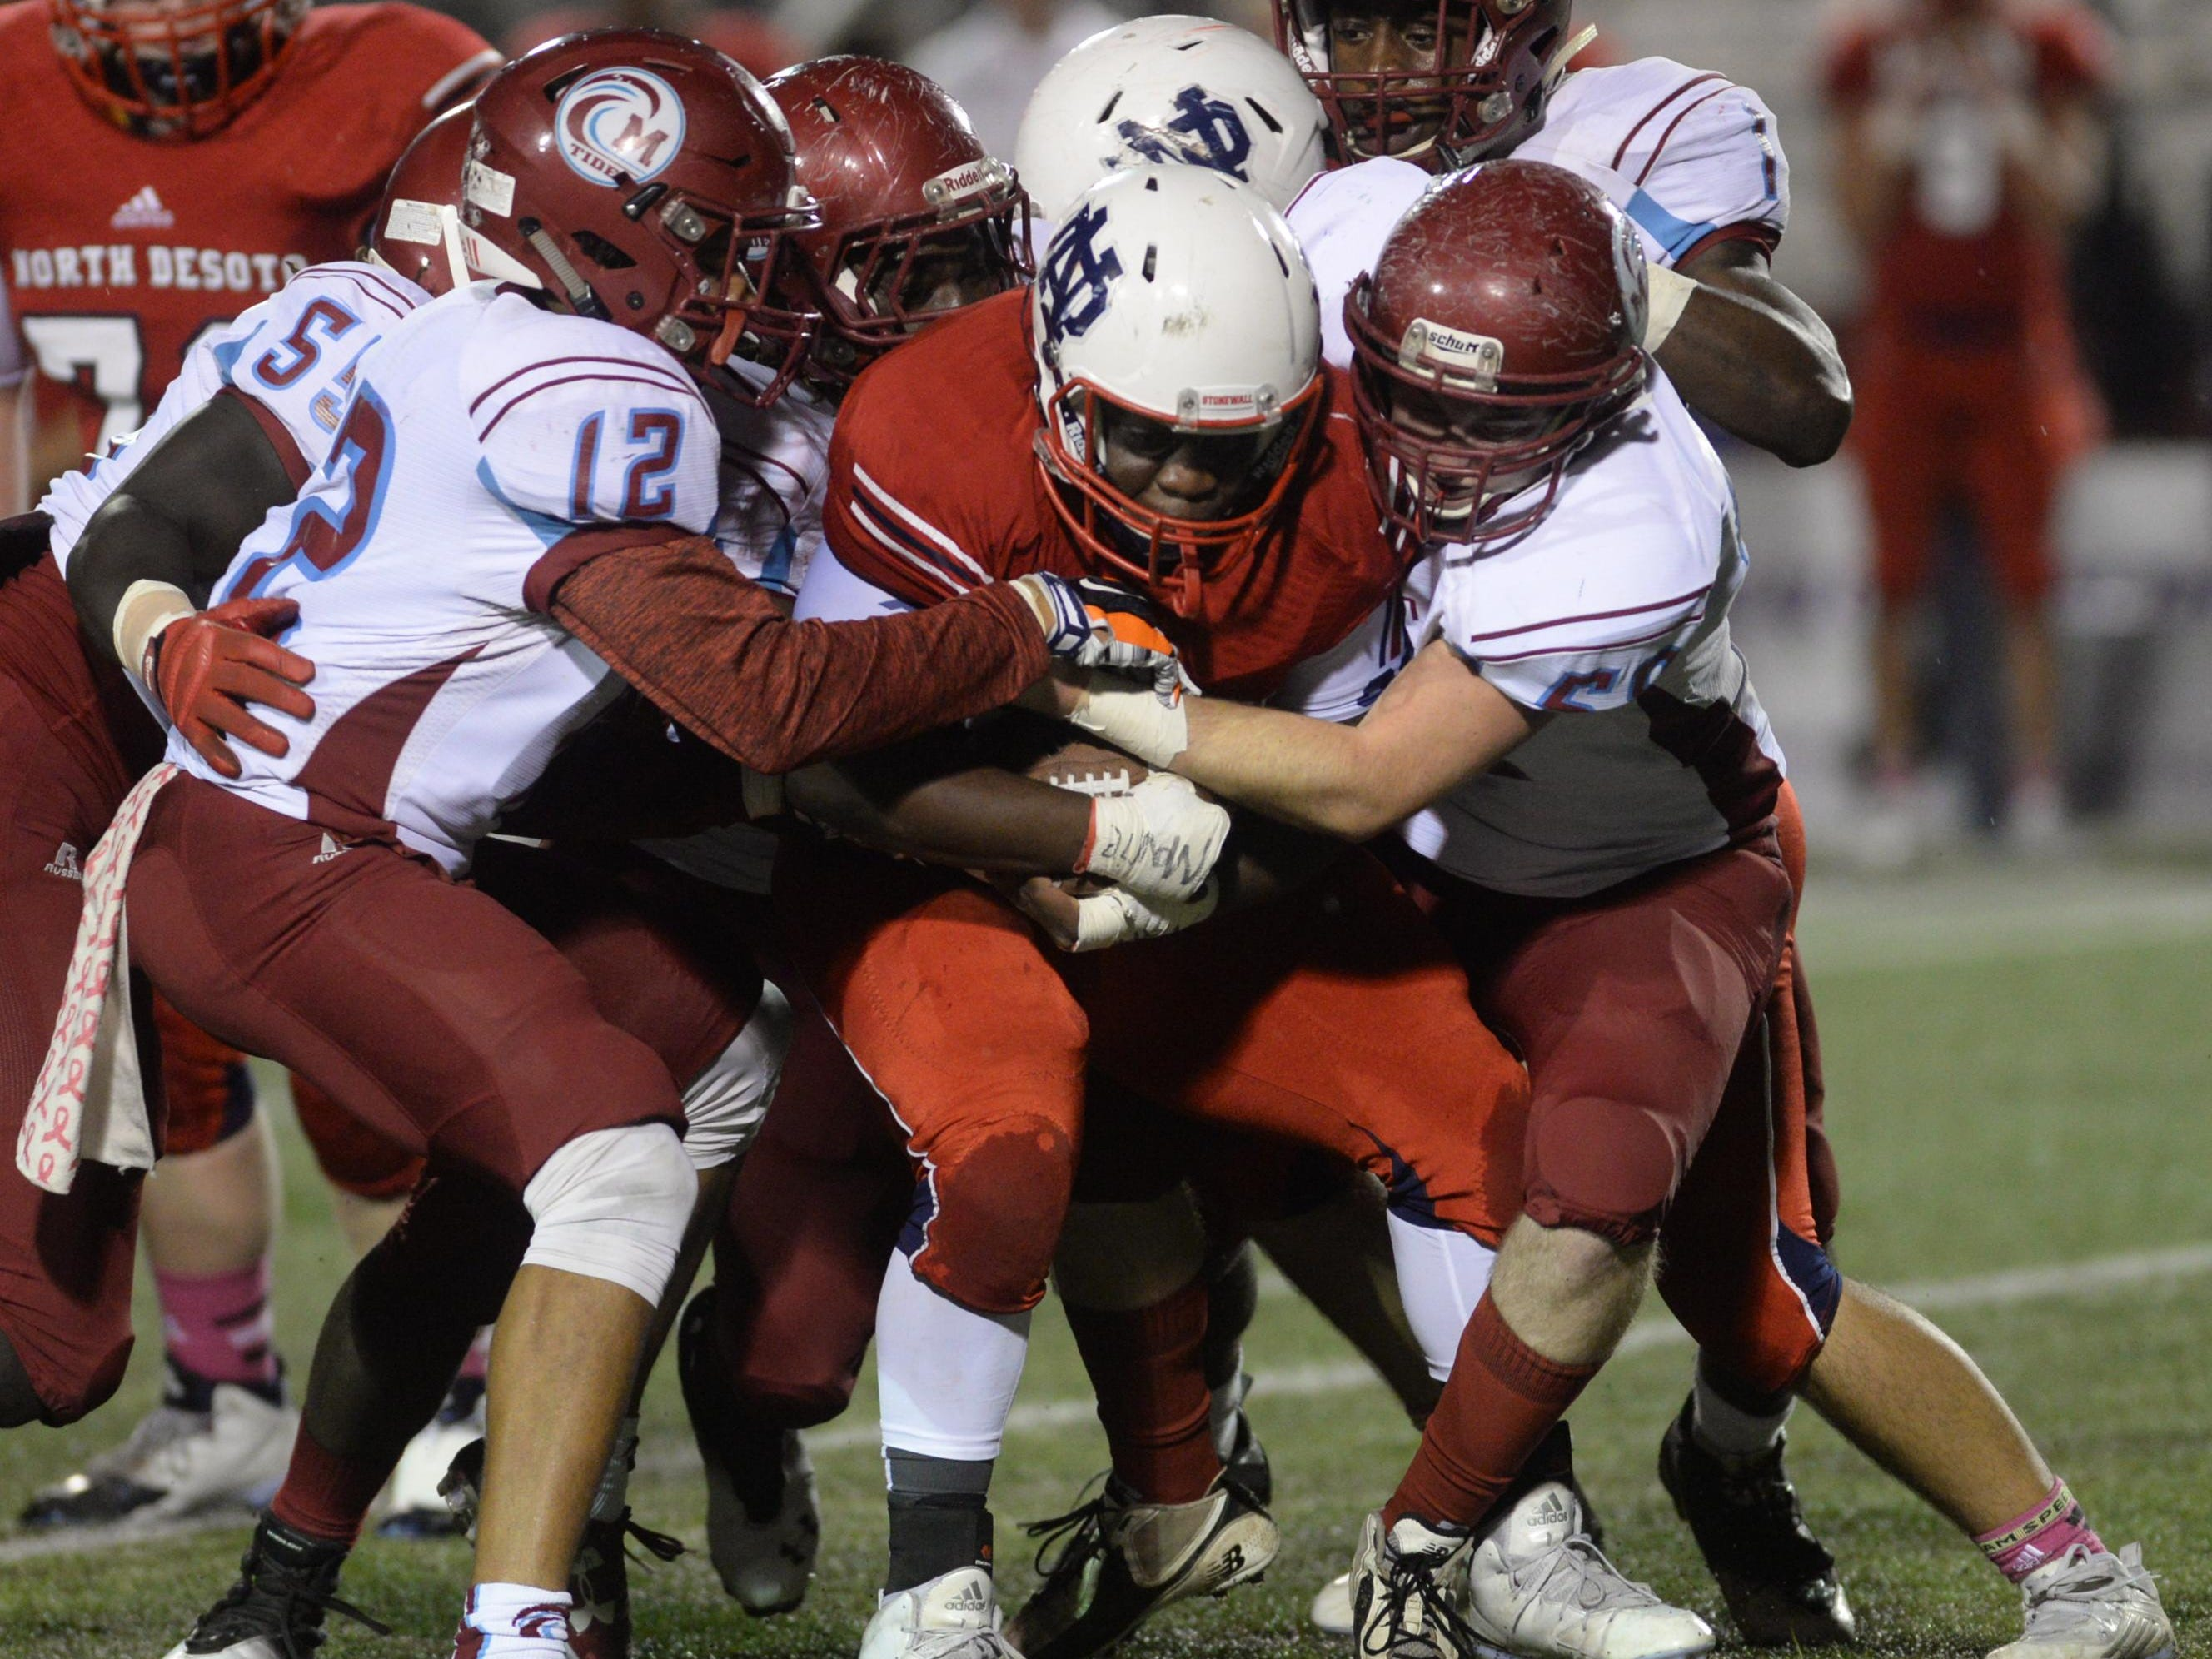 The Minden defense smothers Dennis Hall of North Desoto during their game Friday night.